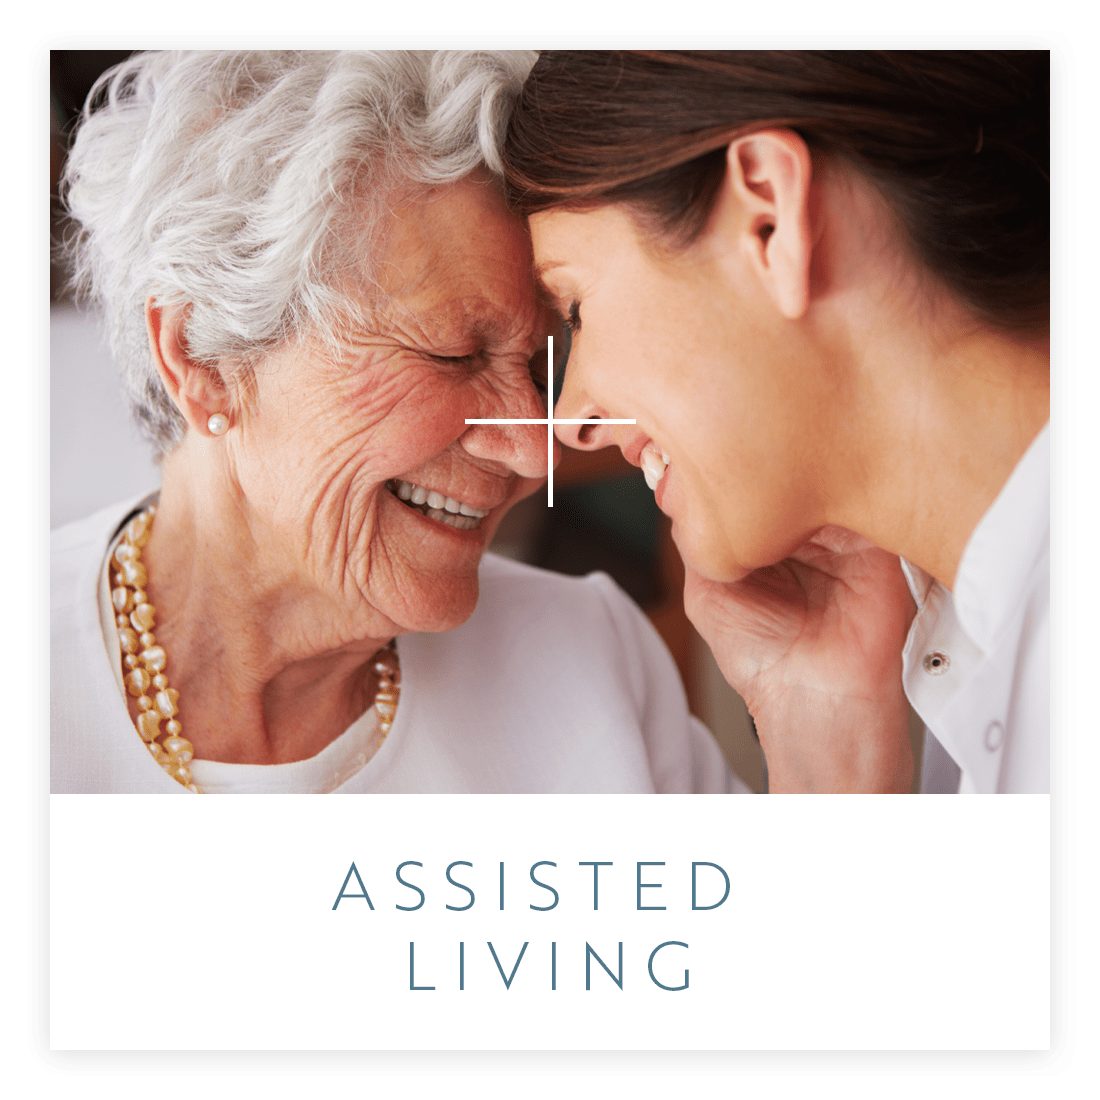 View our Assisted Living services at Regency Palms Oxnard in Oxnard, California